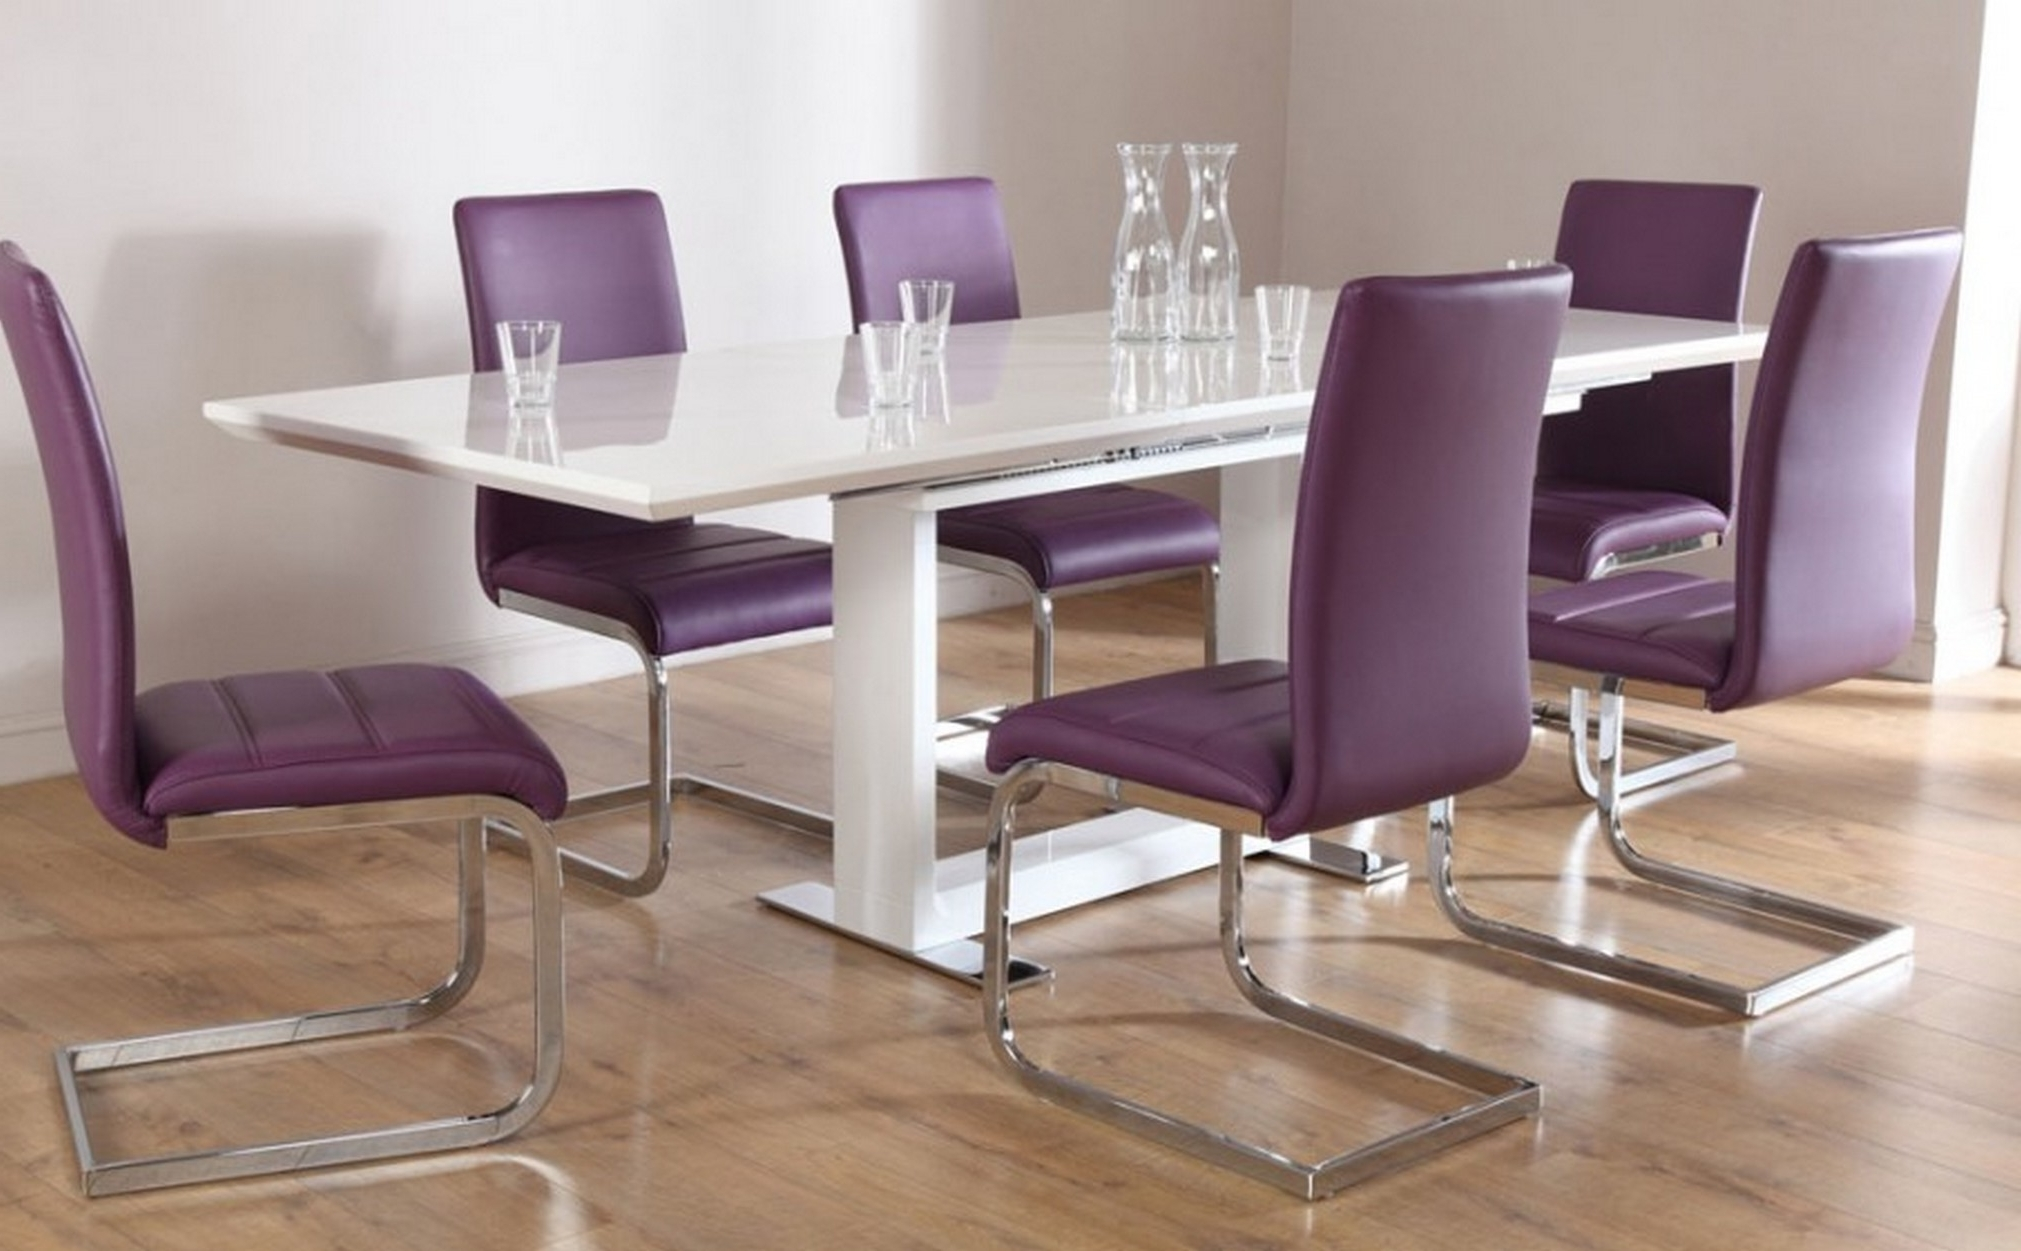 Latest Acrylic Dining Tables In Outstanding Small Dining Room Design With Rectangle White Acrylic (View 16 of 25)